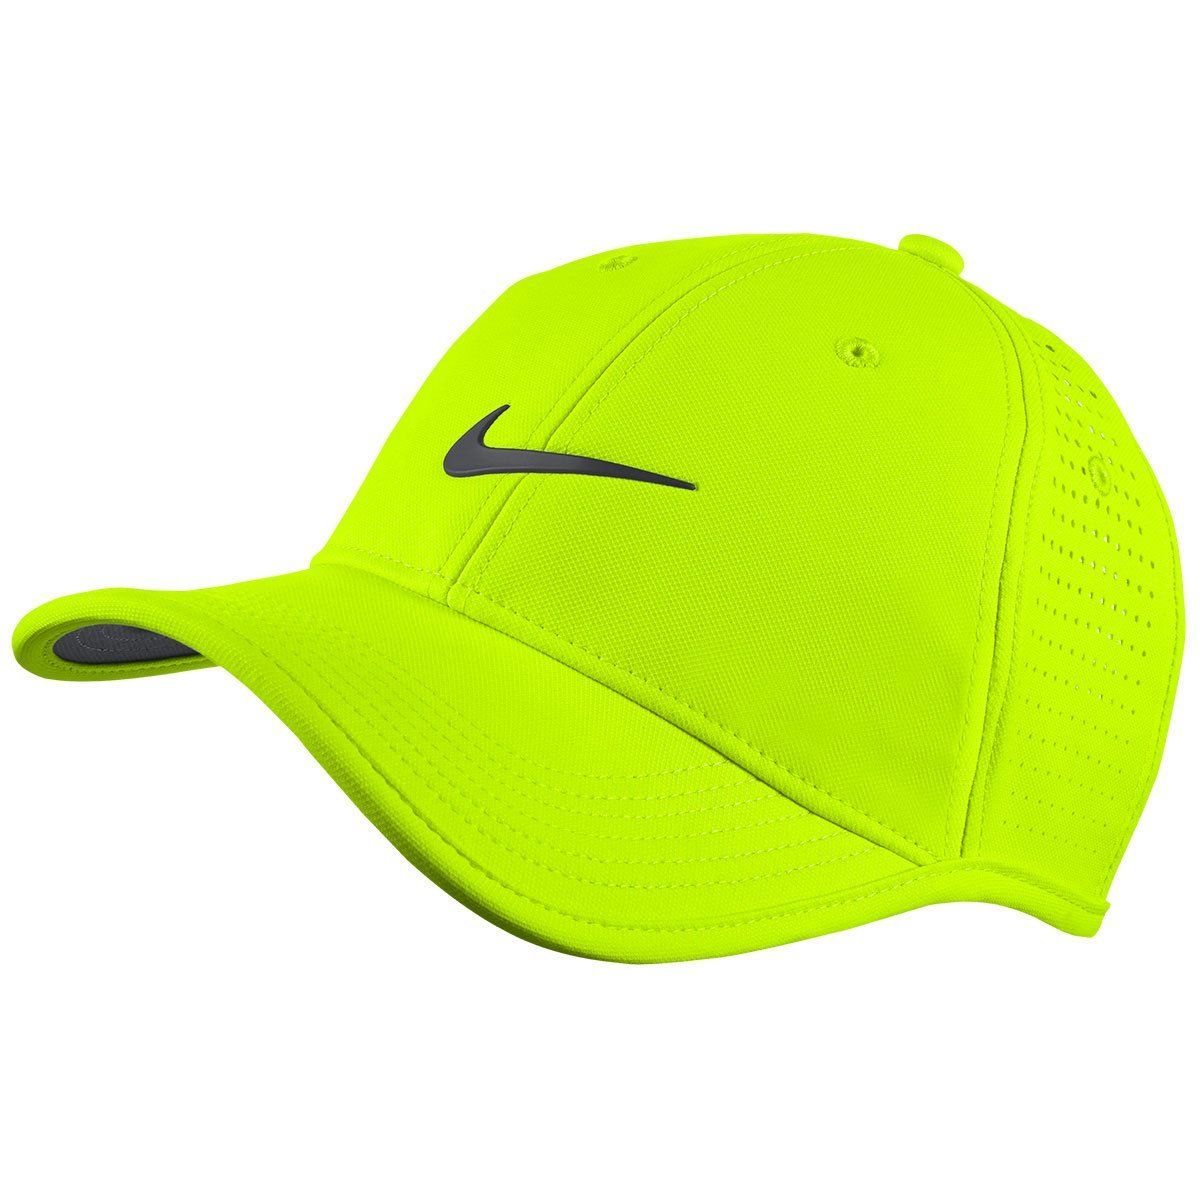 6191943a2831c Nike Golf 2016 Dri-Fit Ultralight Tour Perforated Adjustable Mens Golf Cap  Volt White